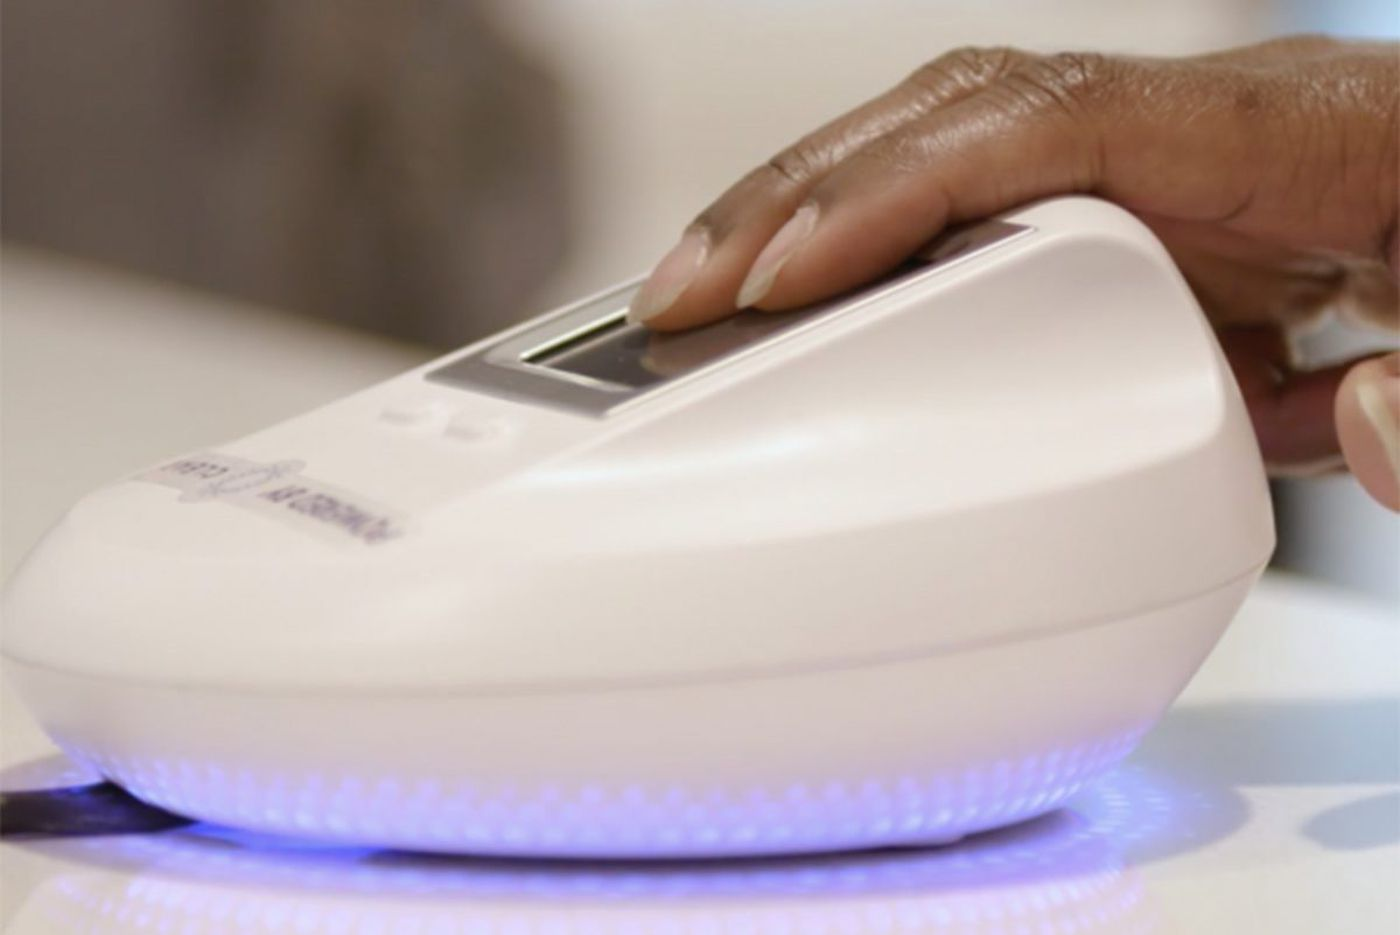 Fingerprints, facial scans becoming more commonplace at airports